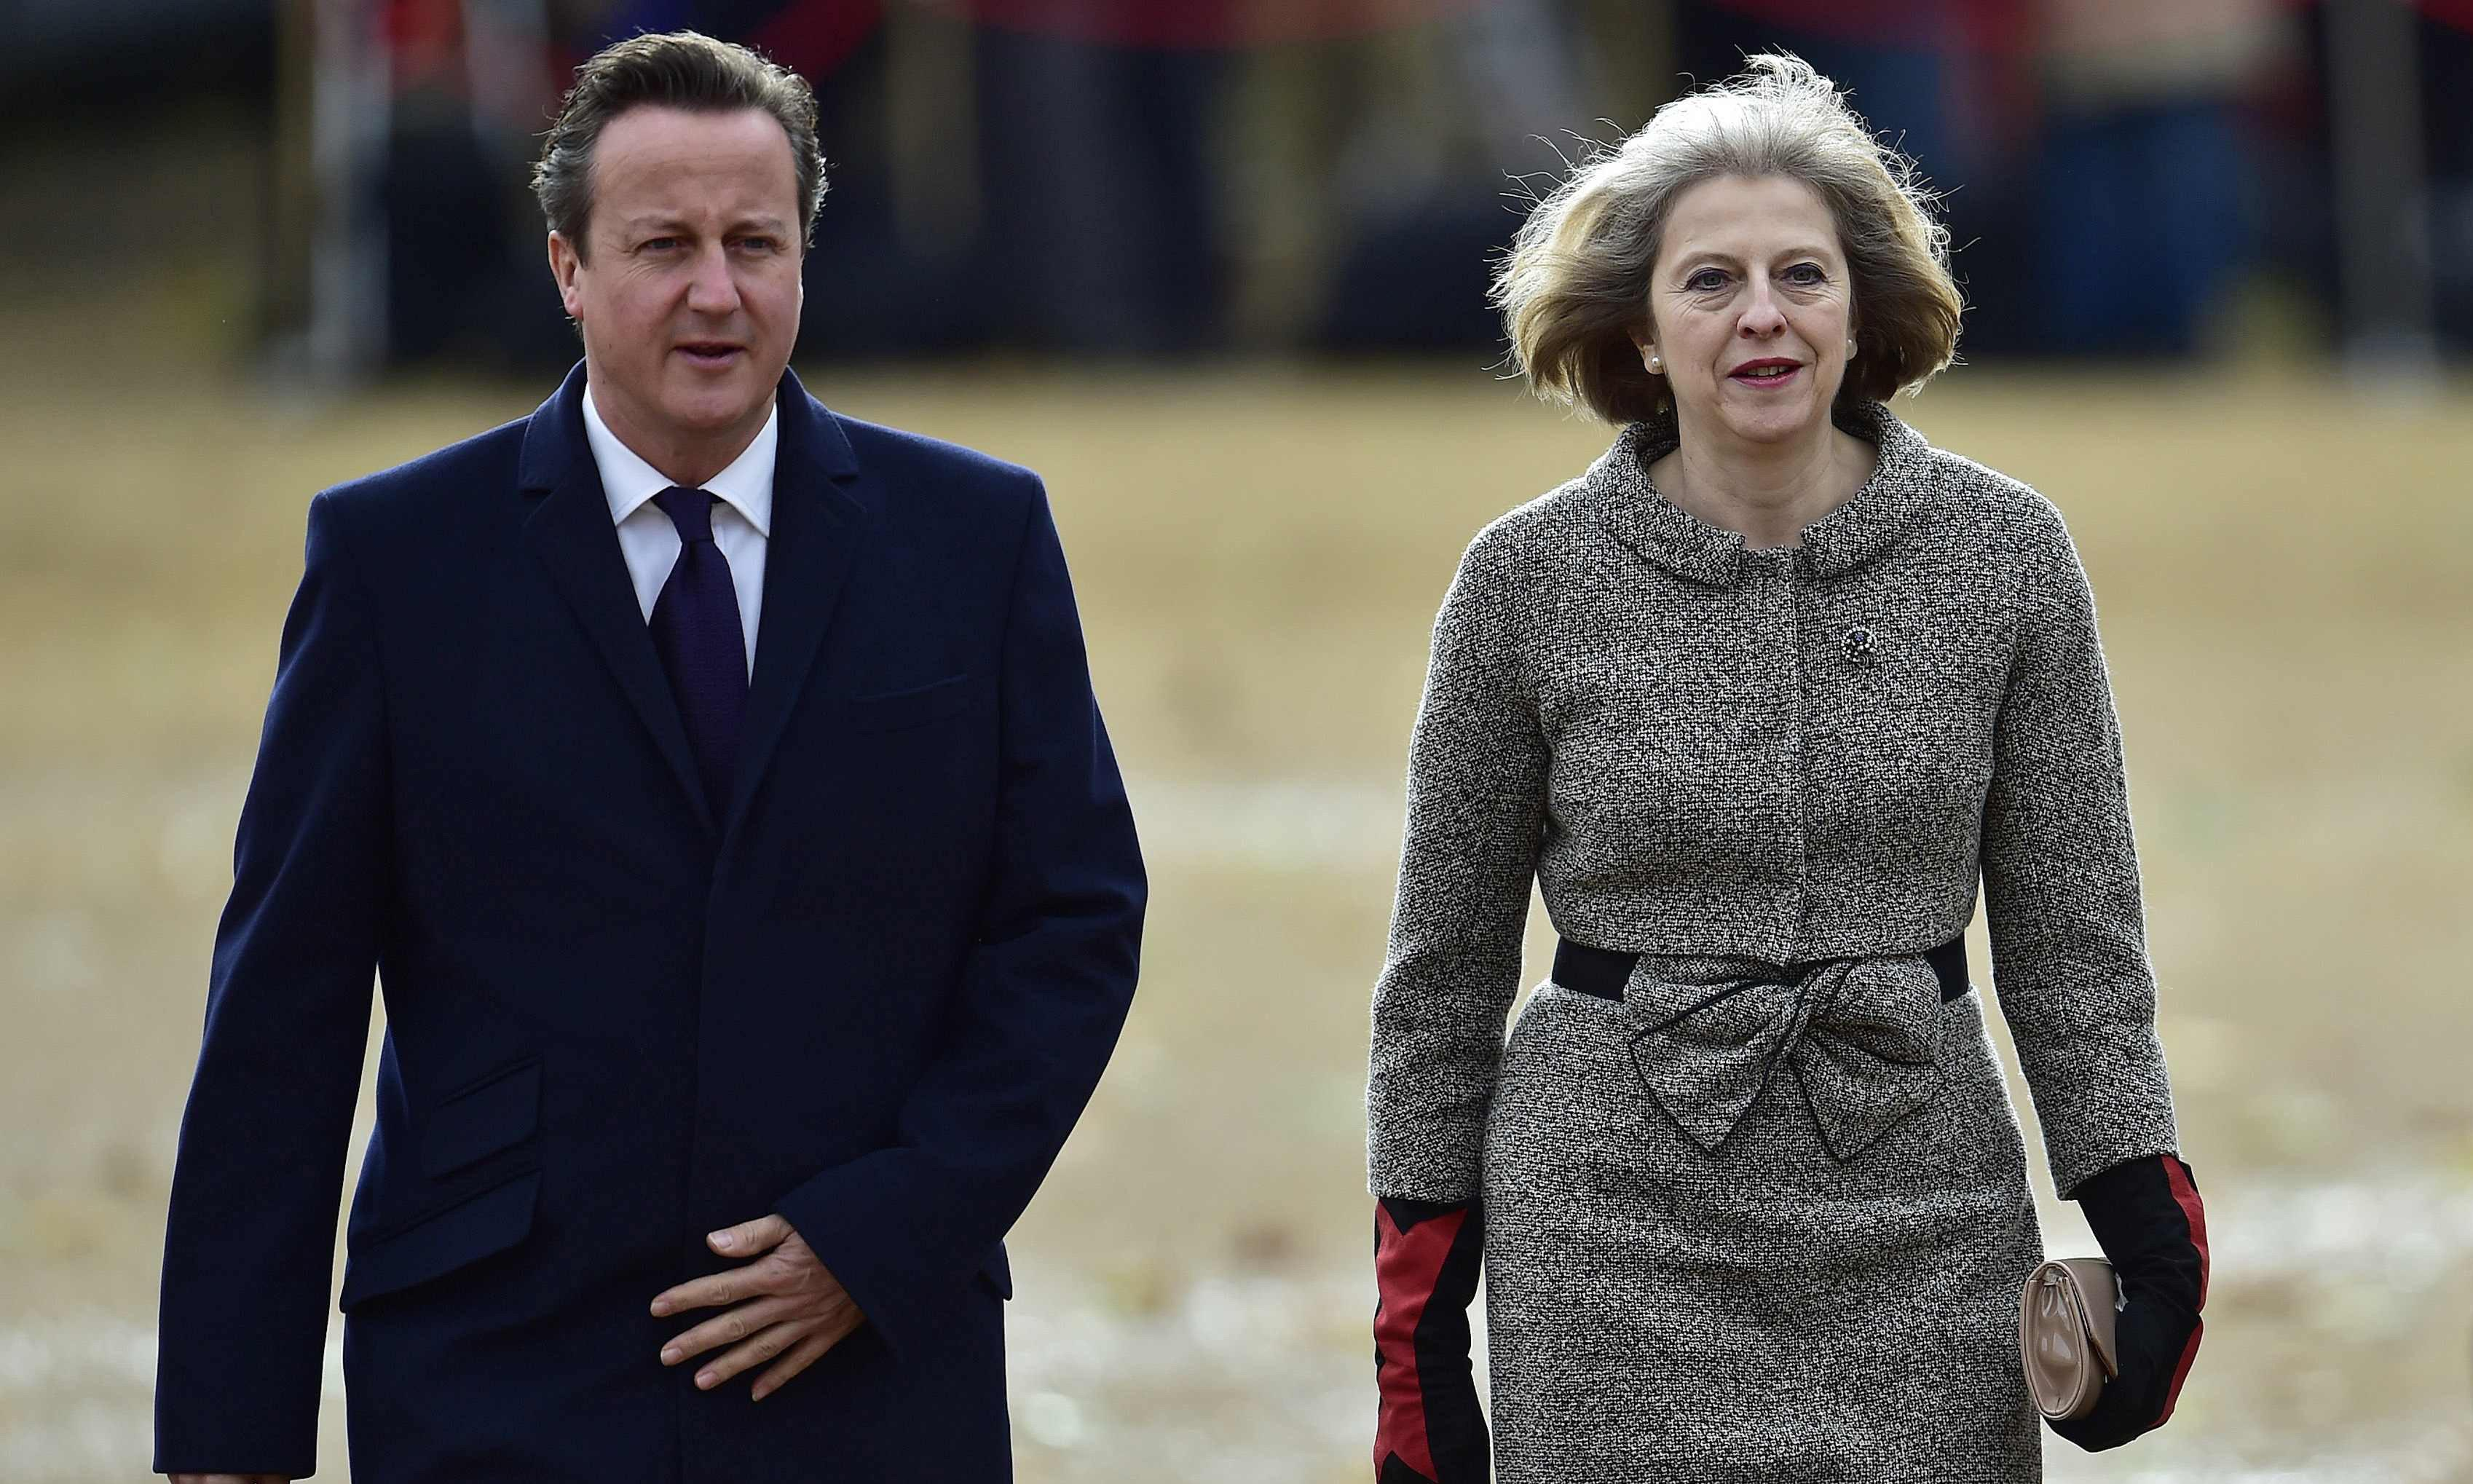 Cameron's arrogance hurt the country, but May's insults cut deep